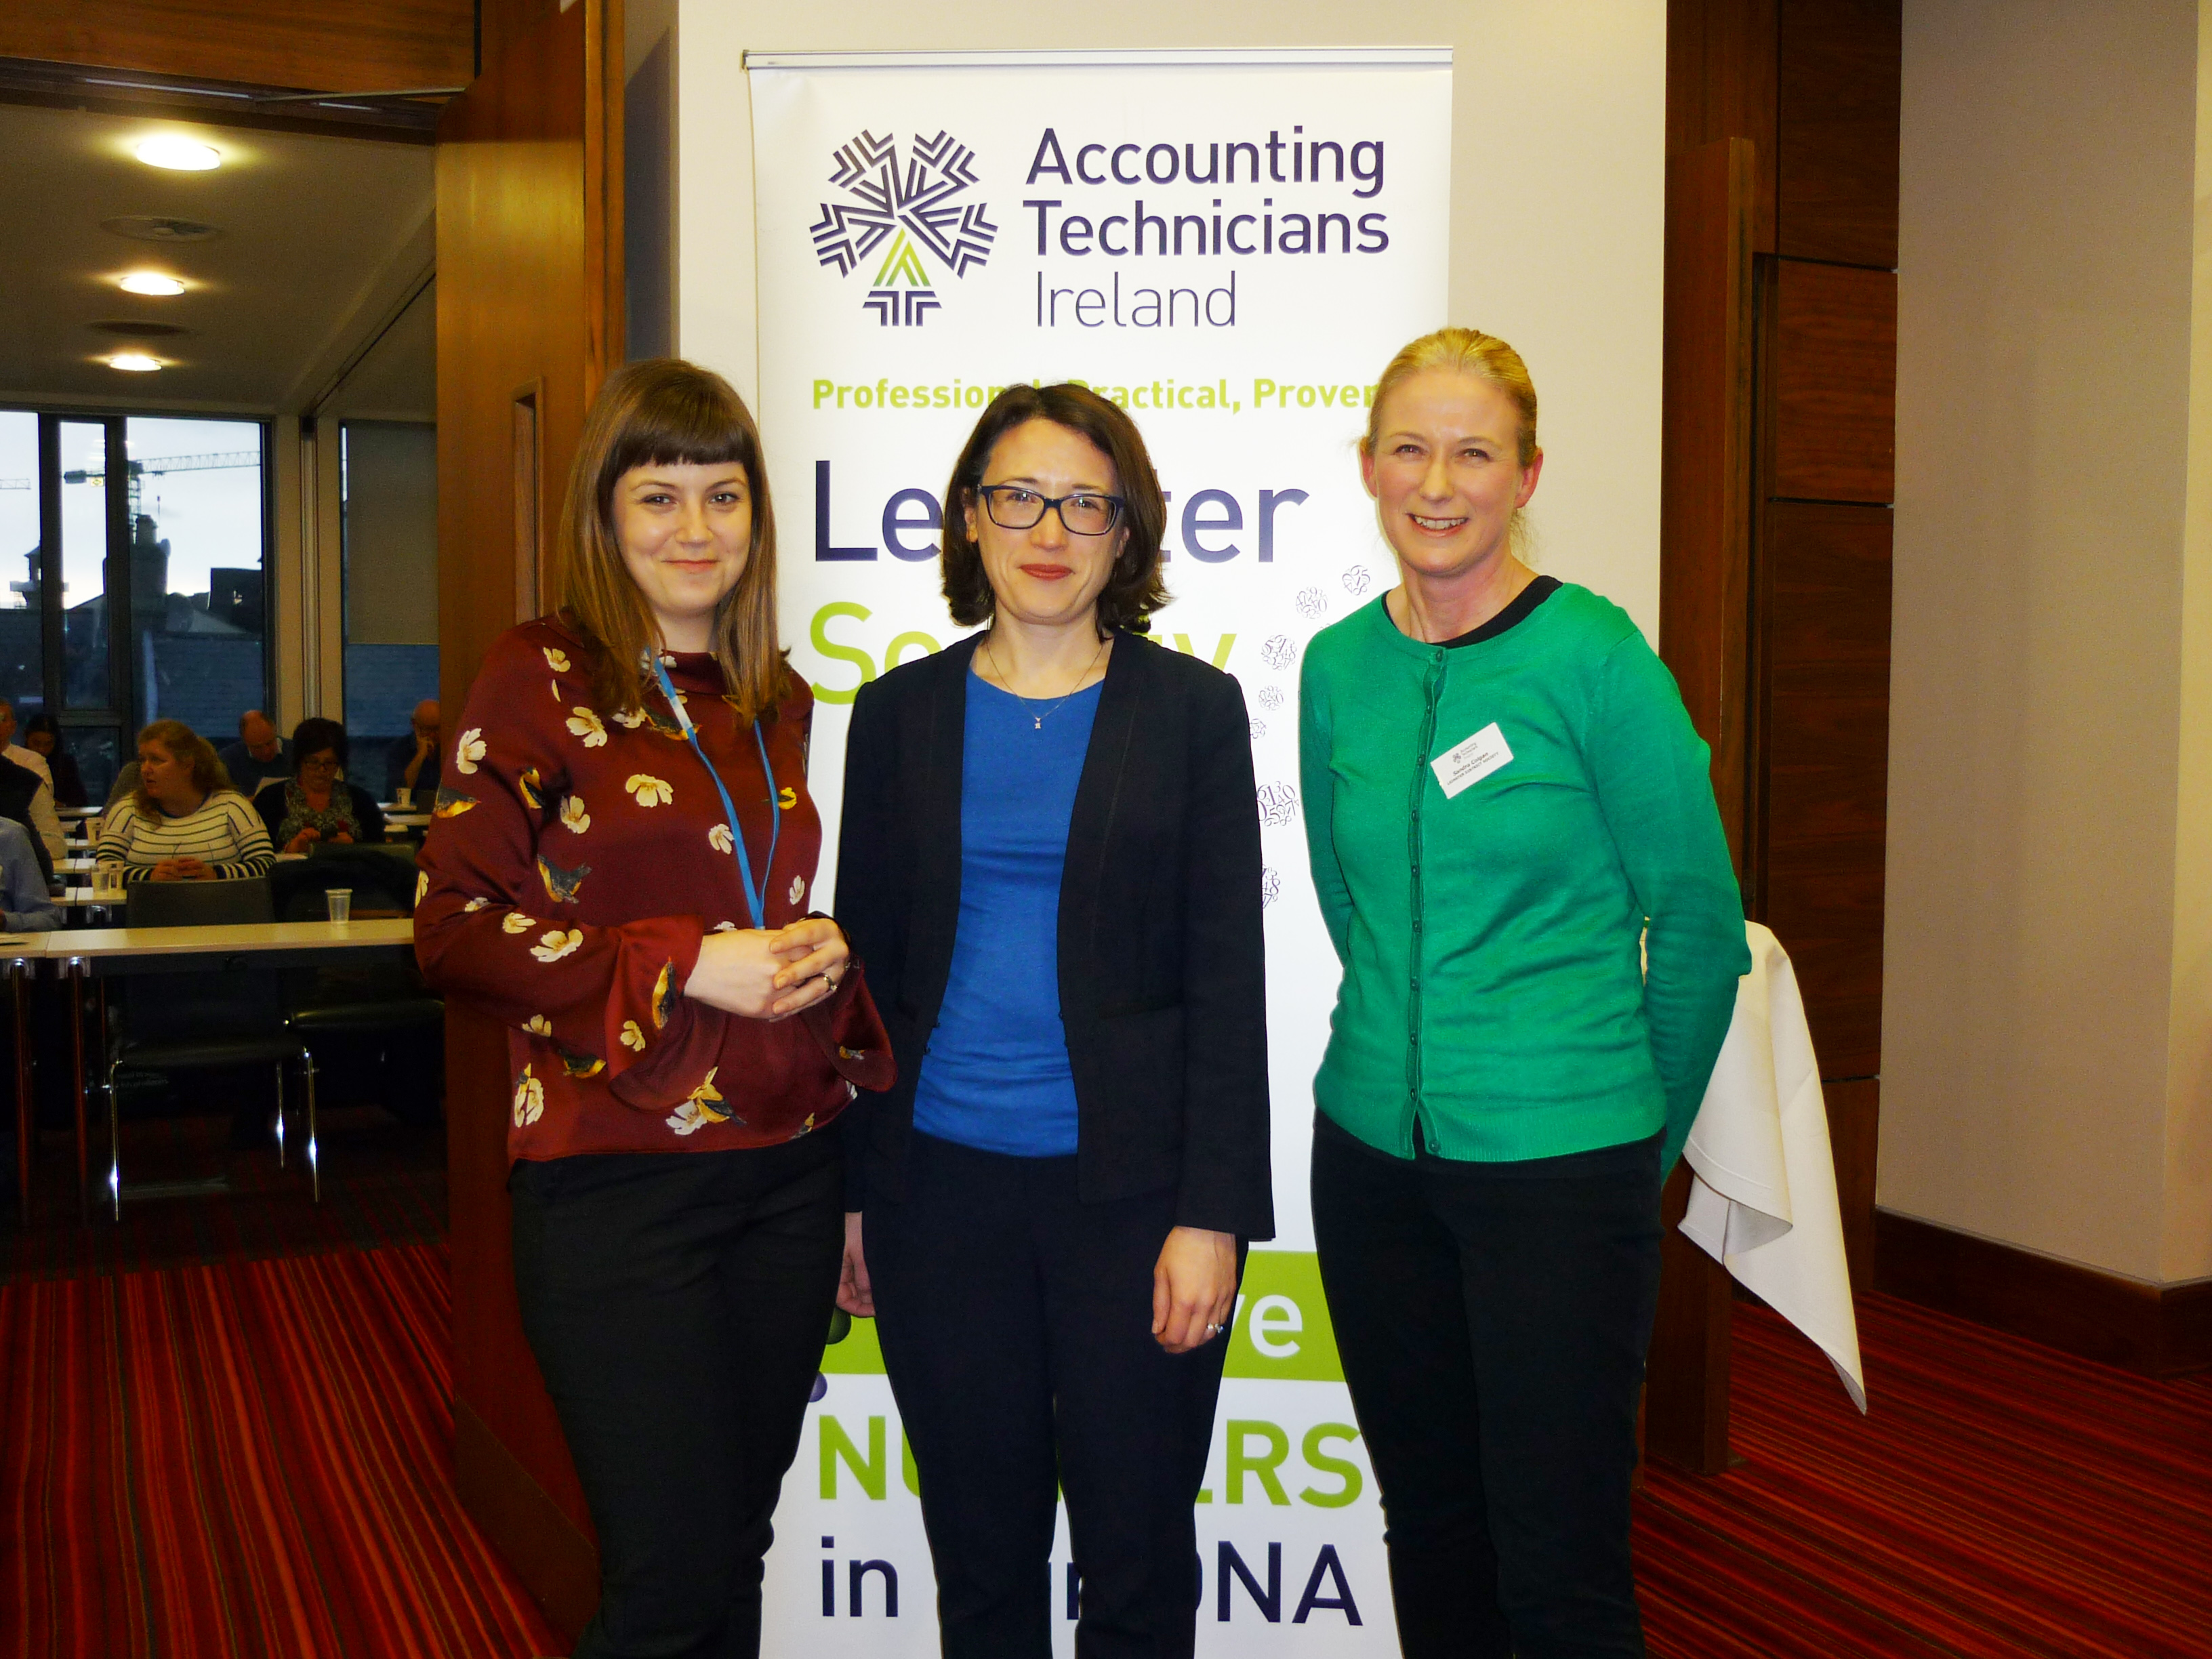 : Raluca Meraru-Bindac and Nicola Colleran from RSM Ireland with Sandra Colgan